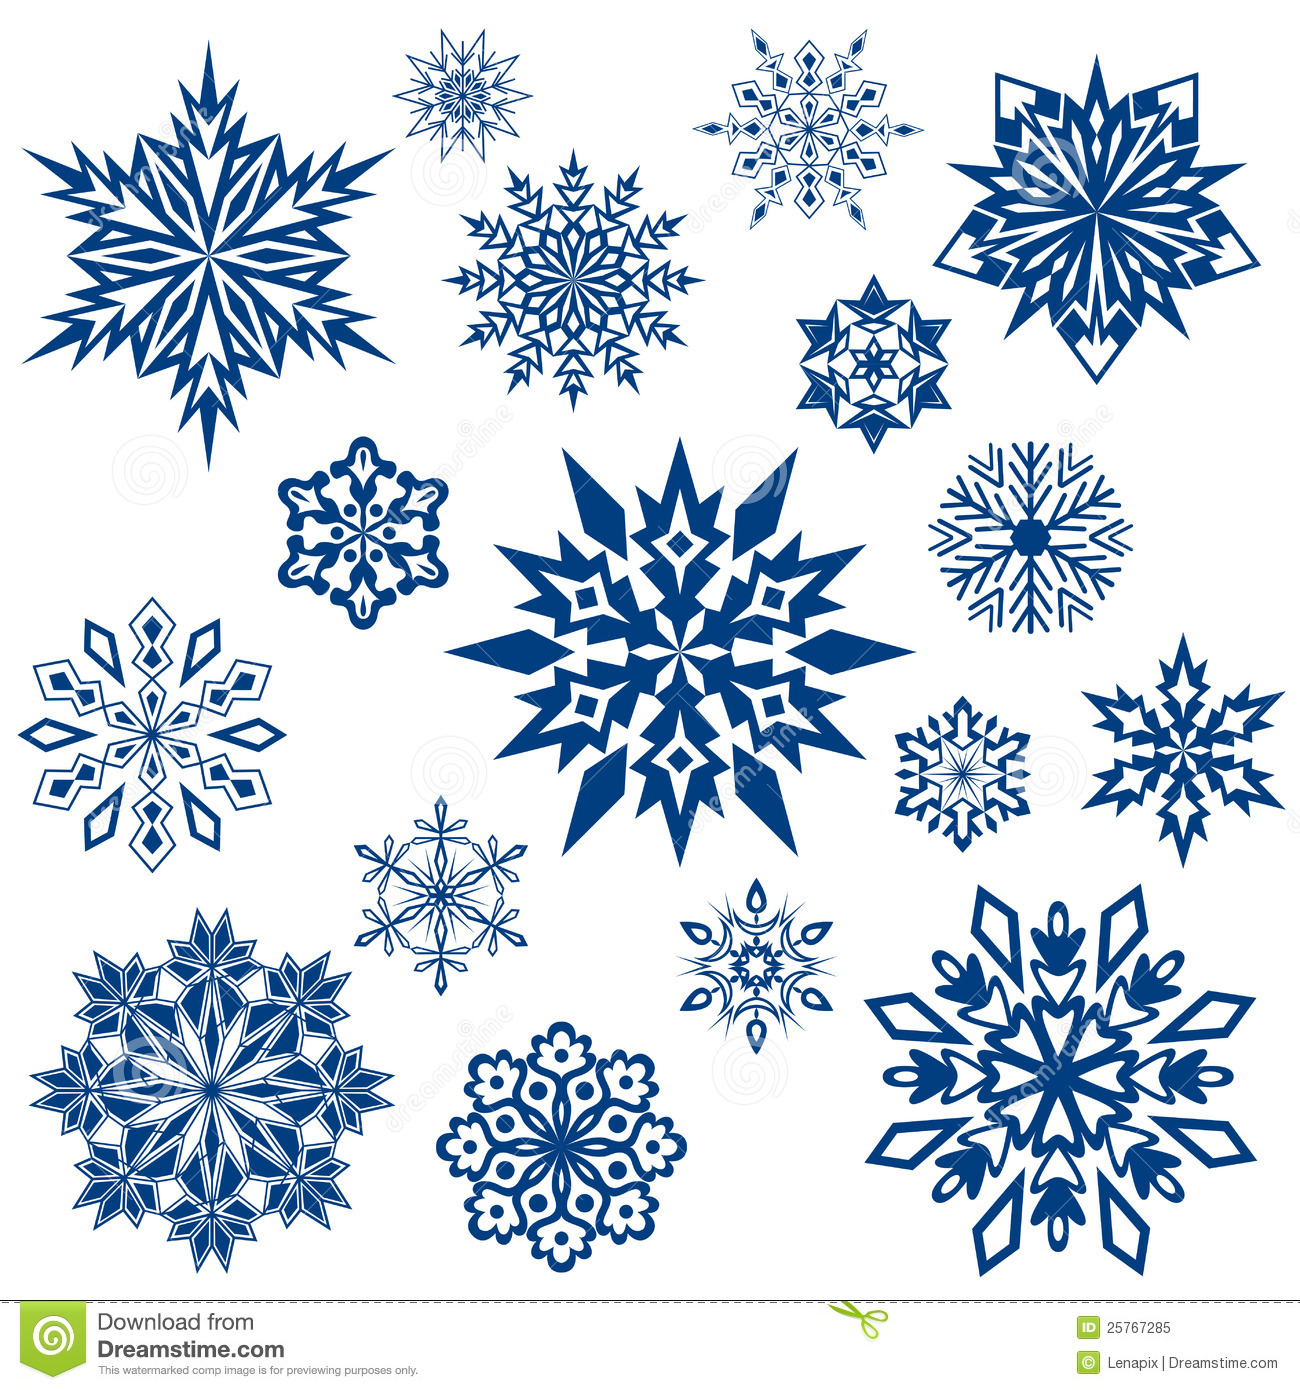 Snowflake Shapes Collection Royalty Free Stock Photo Image 25767285